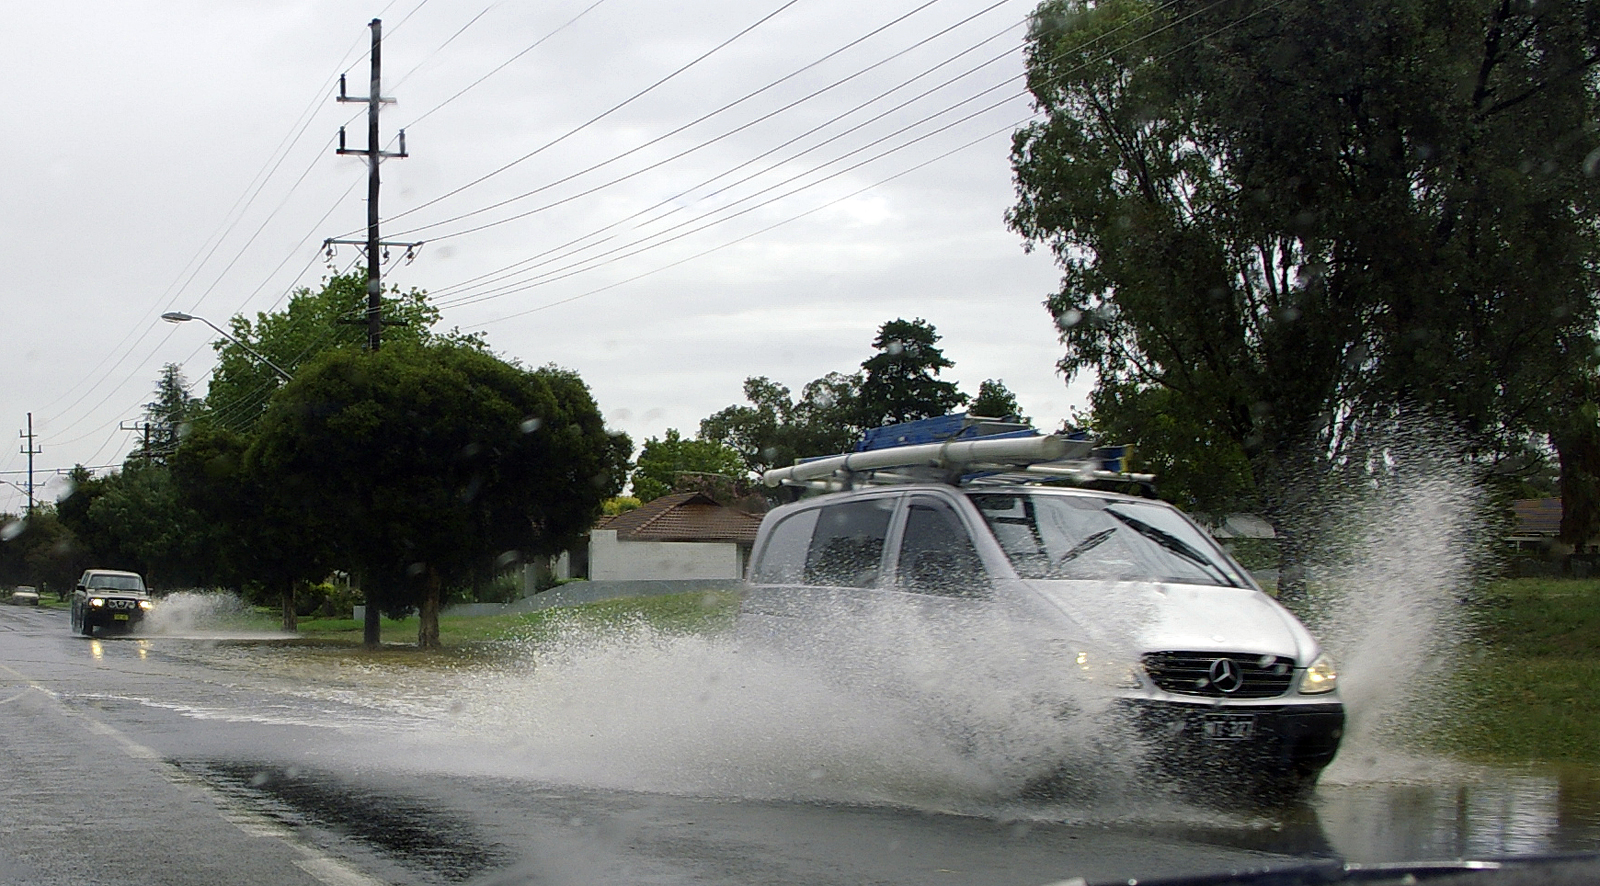 Two_vehicles_aquaplaning